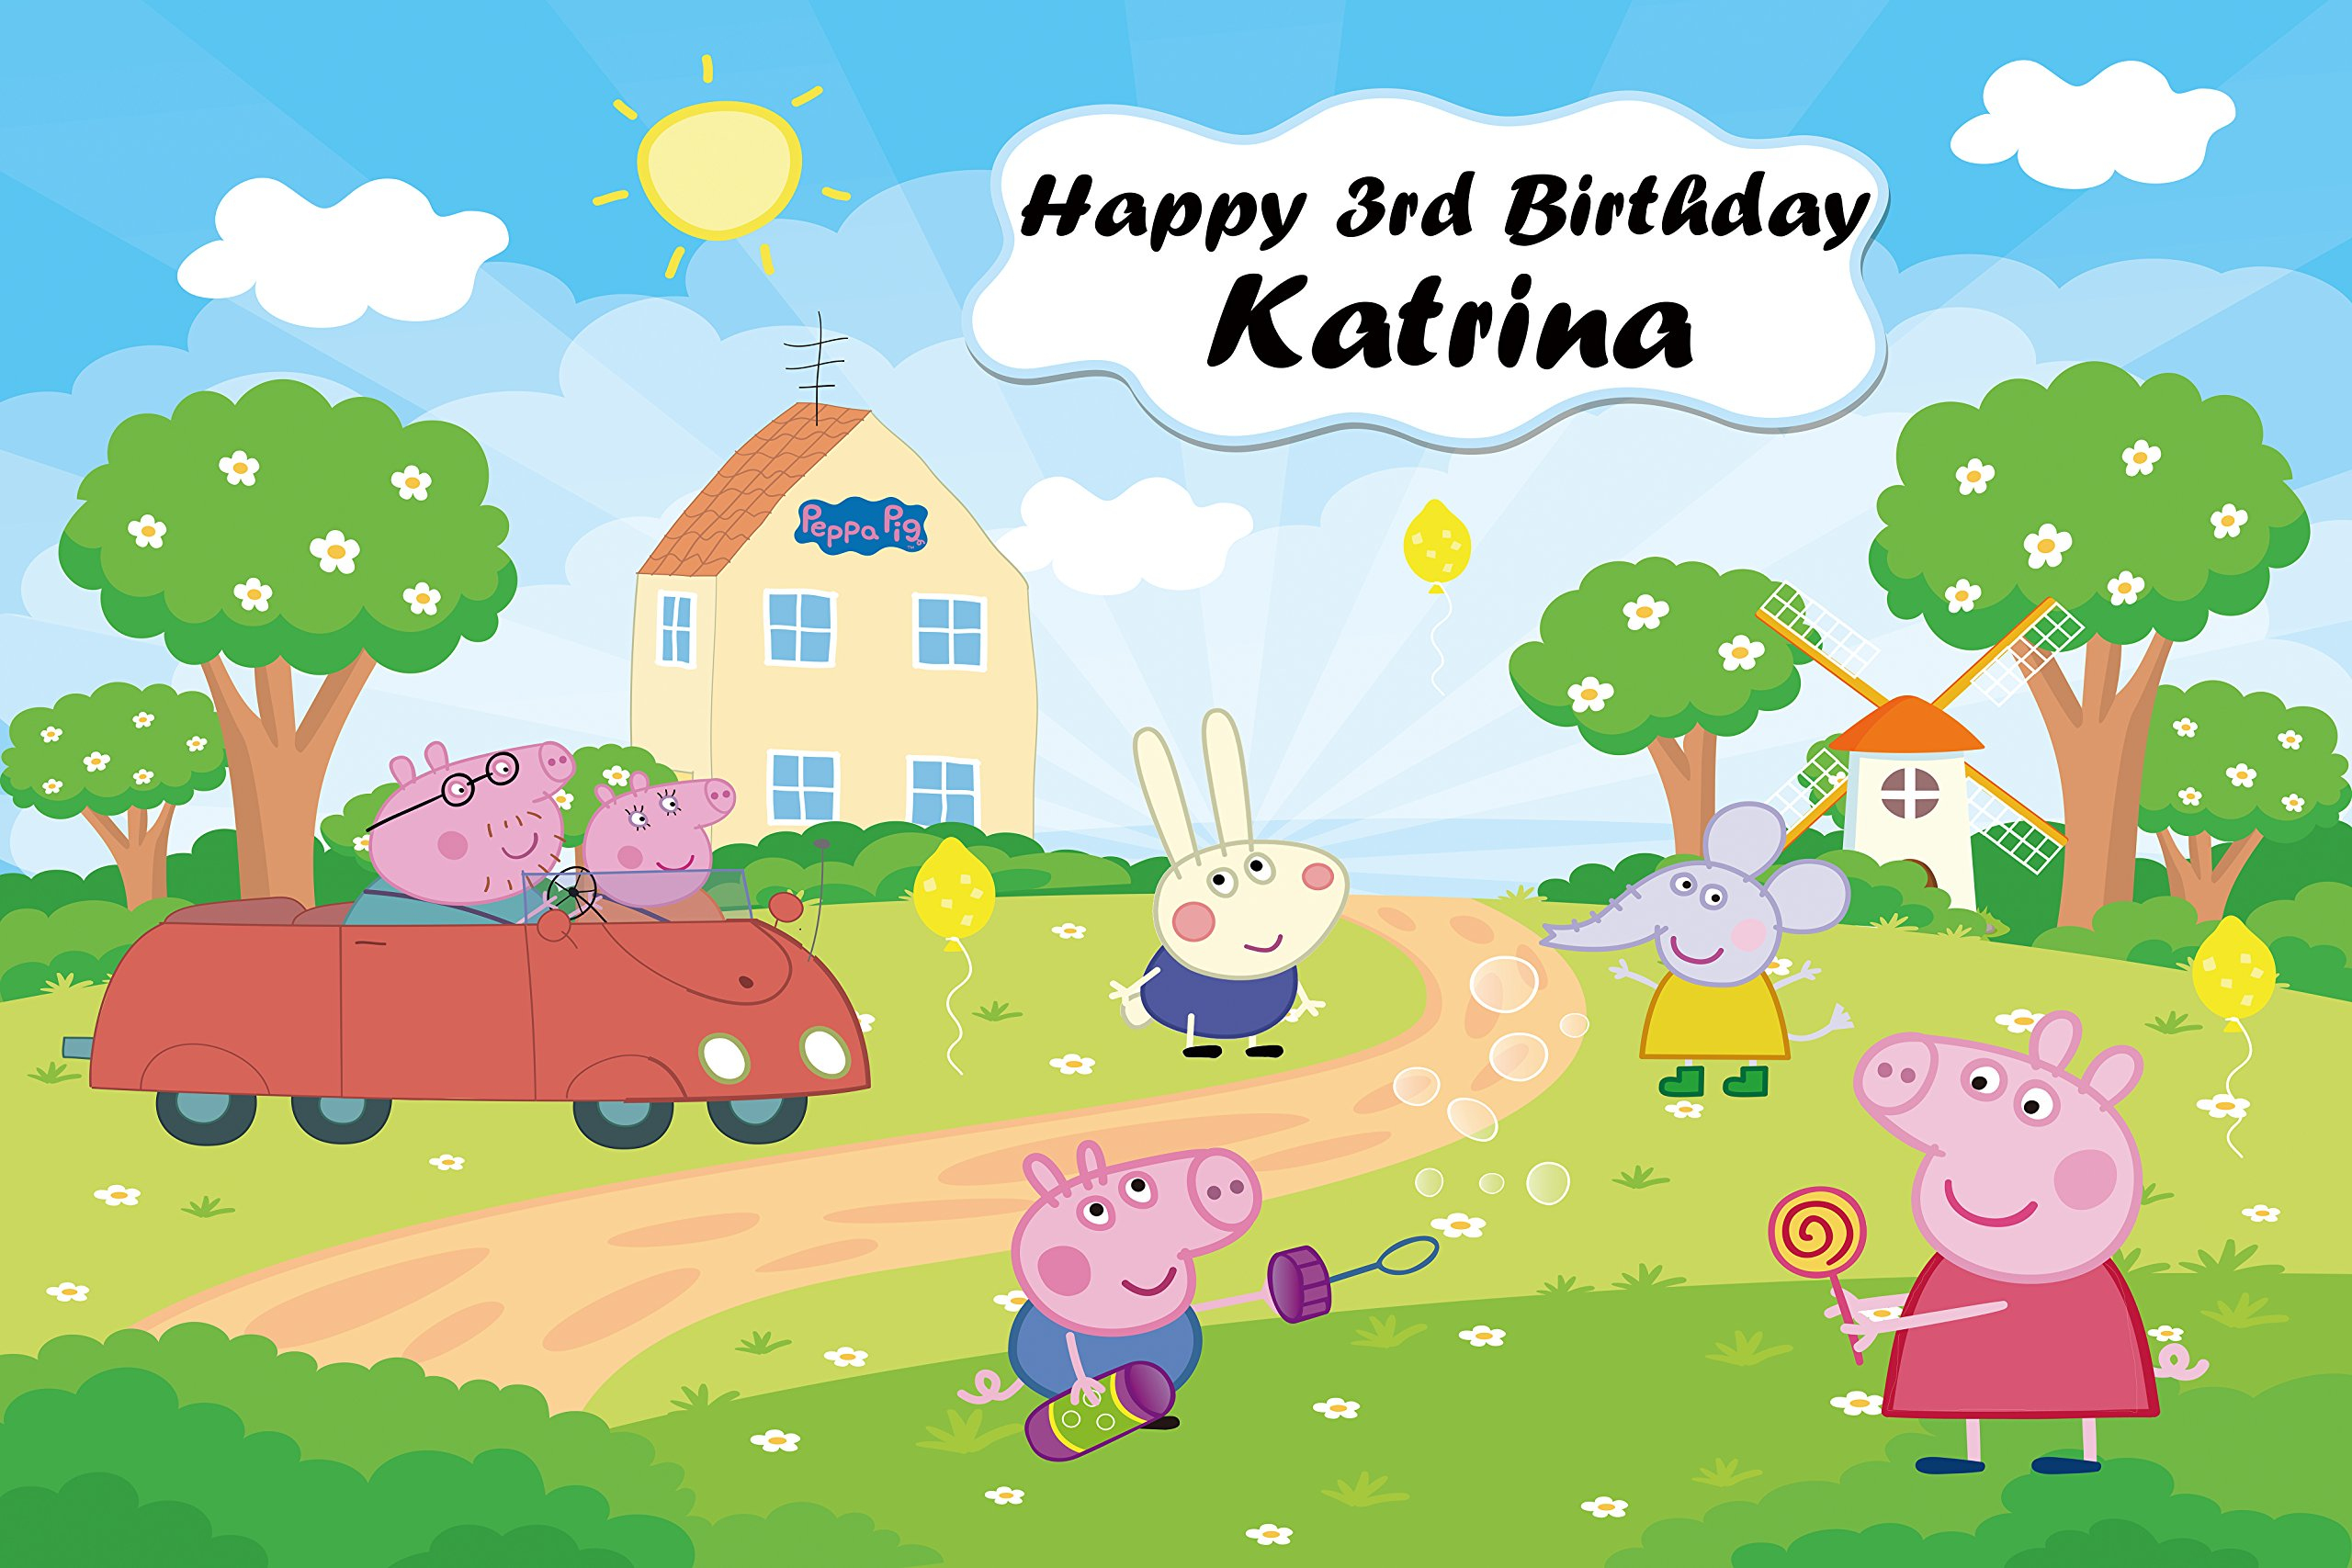 Personalized Peppa Pig Backdrop Custom Birthday Banner Party Decoration, Printed Fabric Photography Background (P0172, 12' wide by 8' tall) by BestDrop